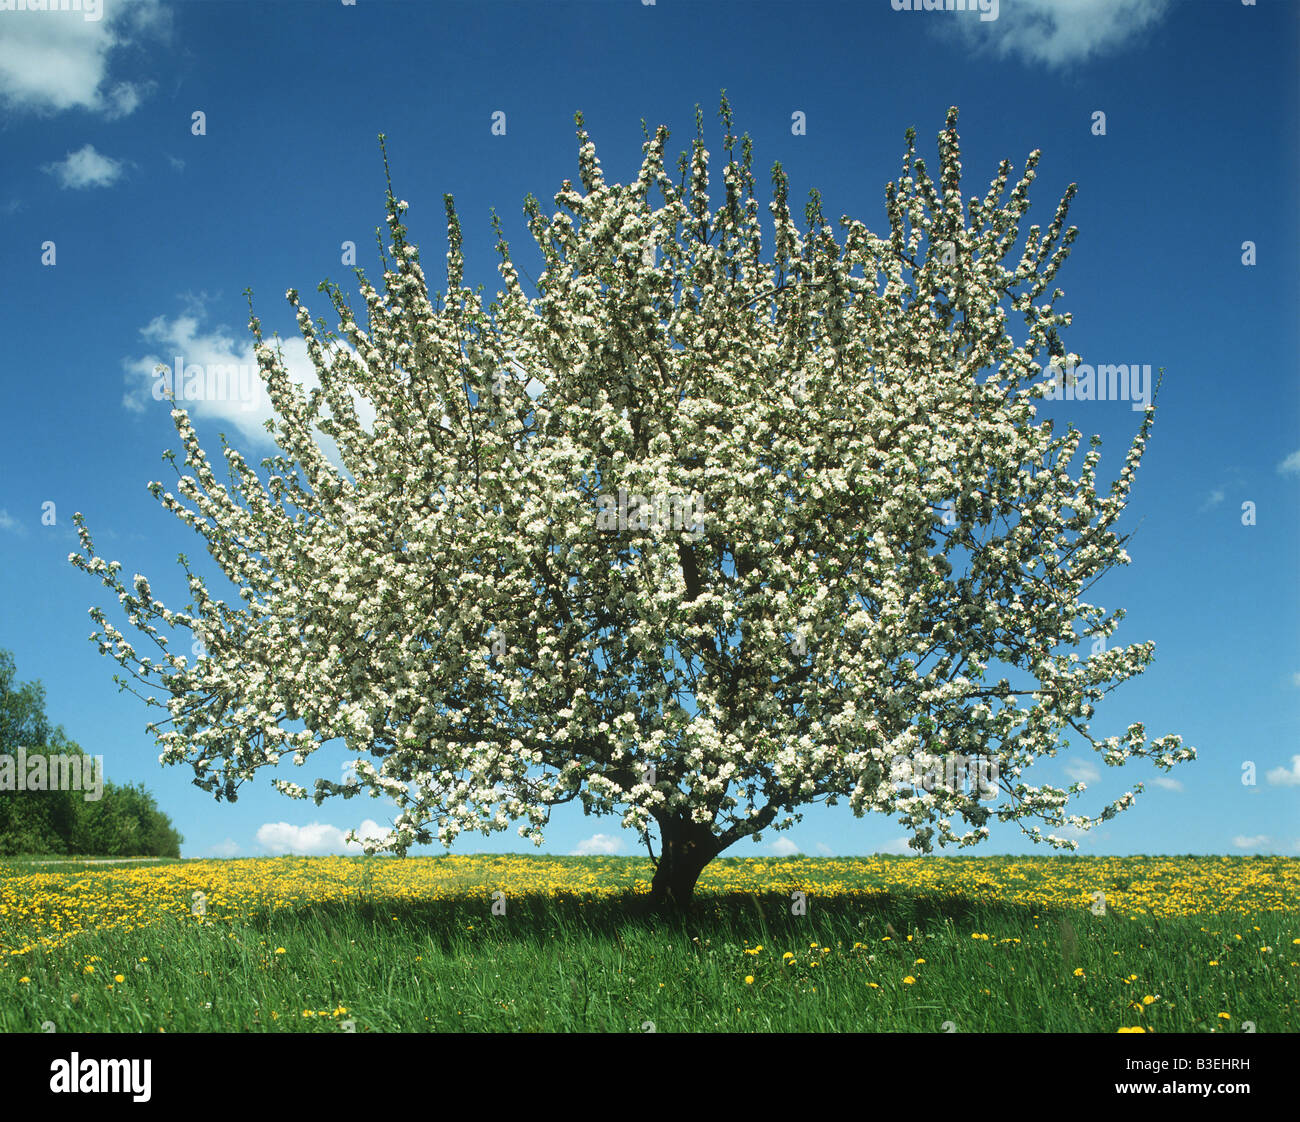 Tree in spring time - Stock Image